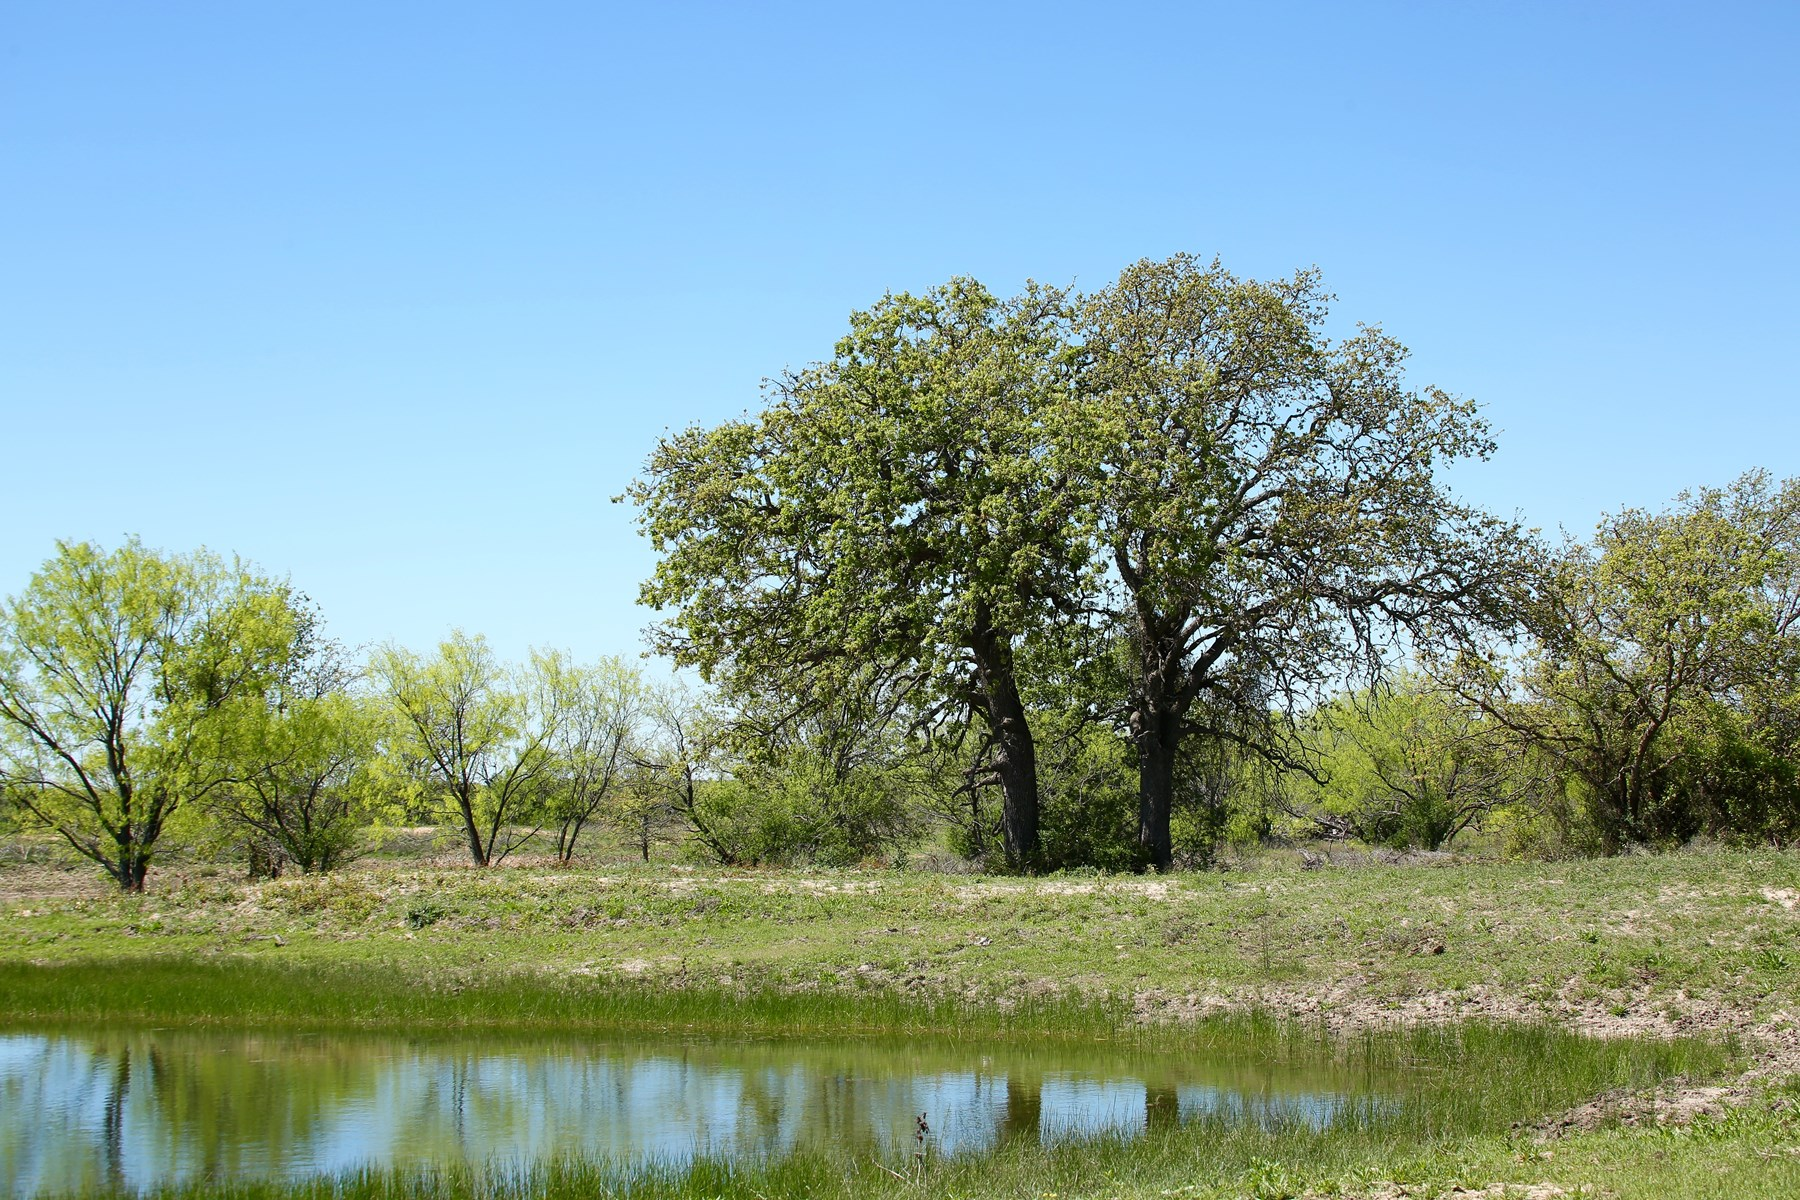 Brownwood TX Ranch for Sale - Hunting - Cattle - Minerals